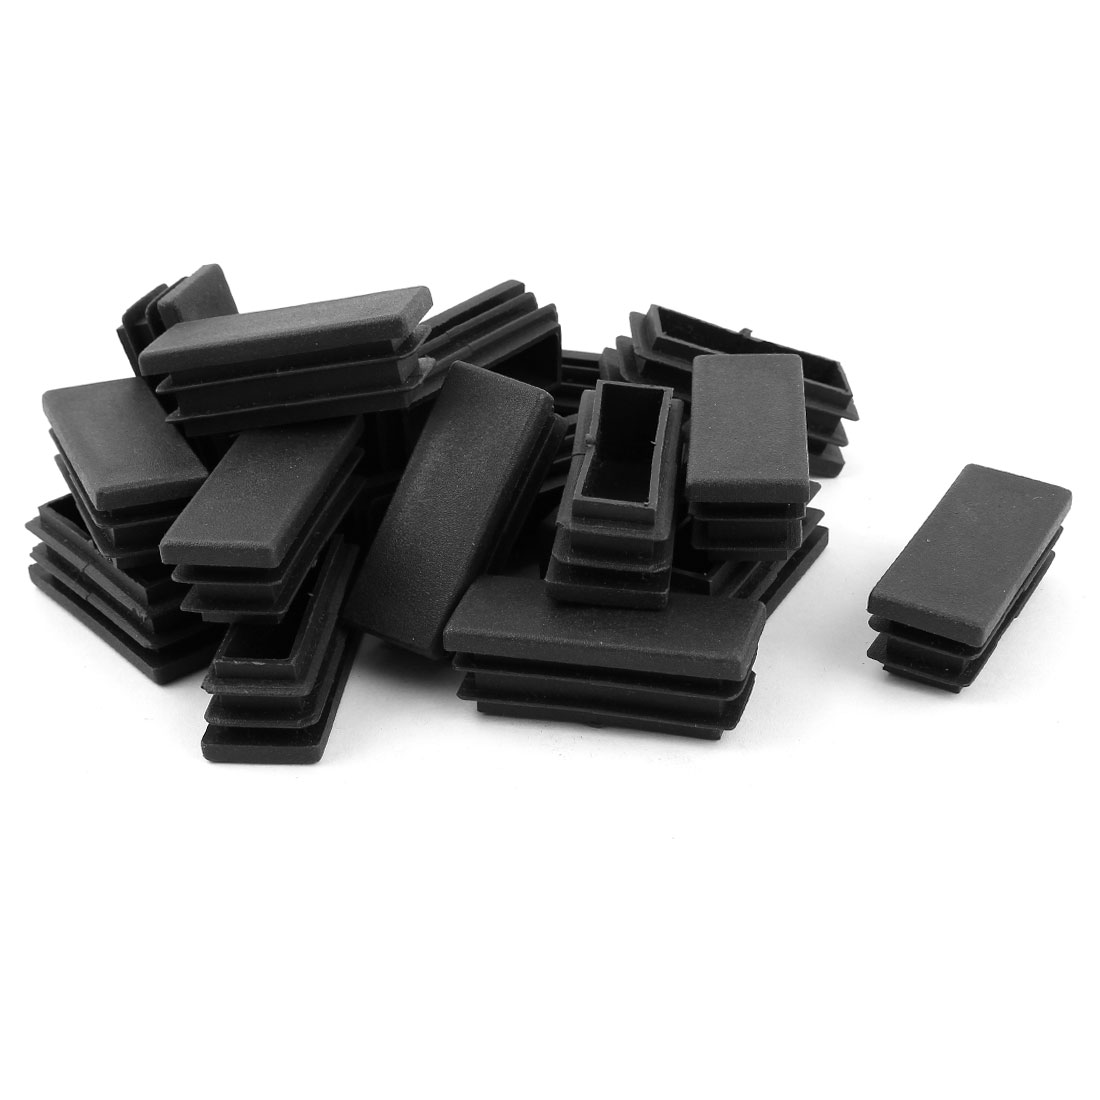 20PCS Black Plastic Rectangle Shape Tube Inserts End Blanking Cap 20mm x 50mm